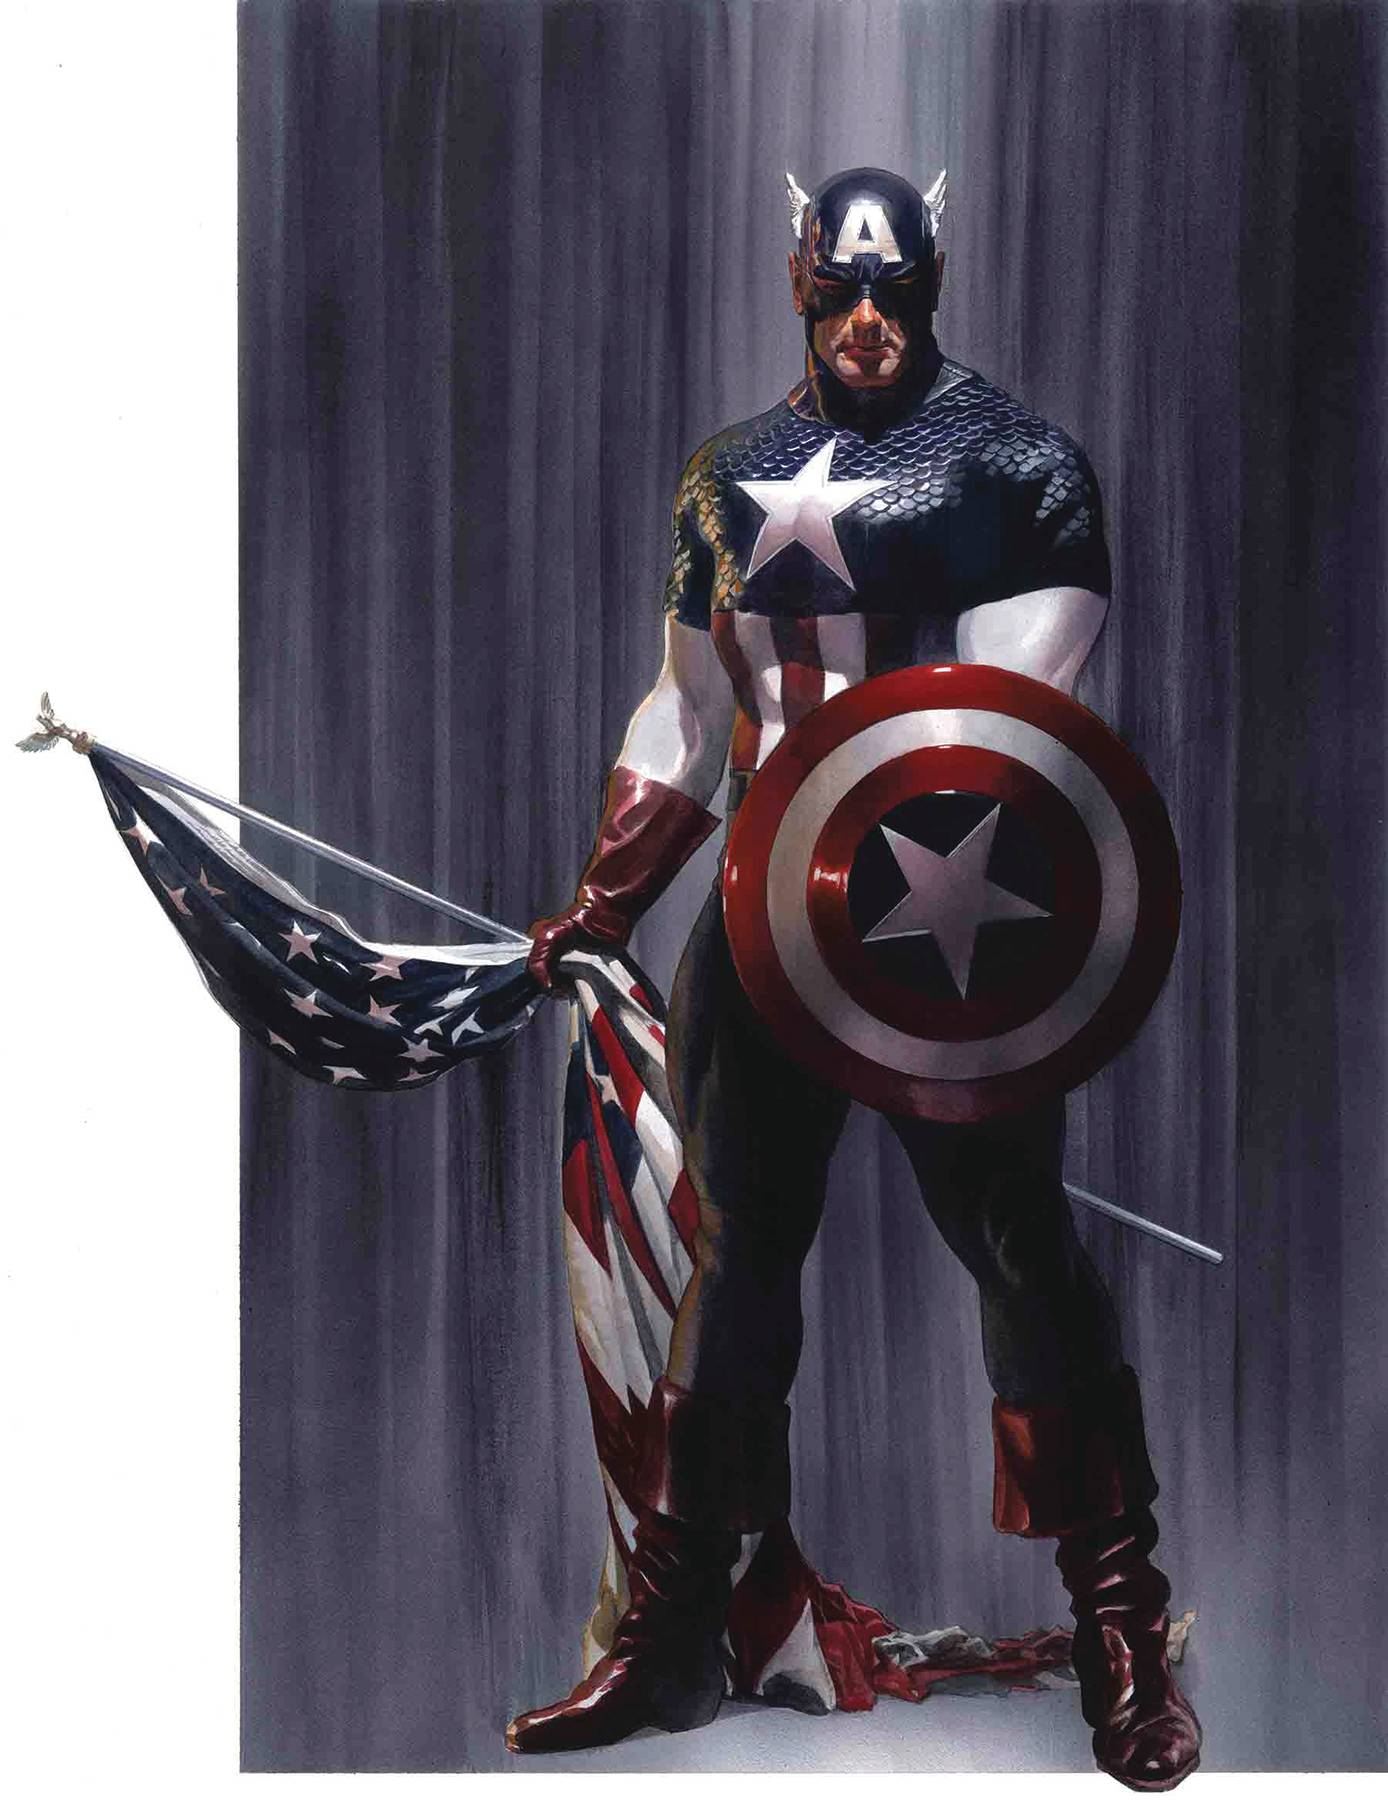 CAPTAIN AMERICA #2 BY ALEX ROSS POSTER